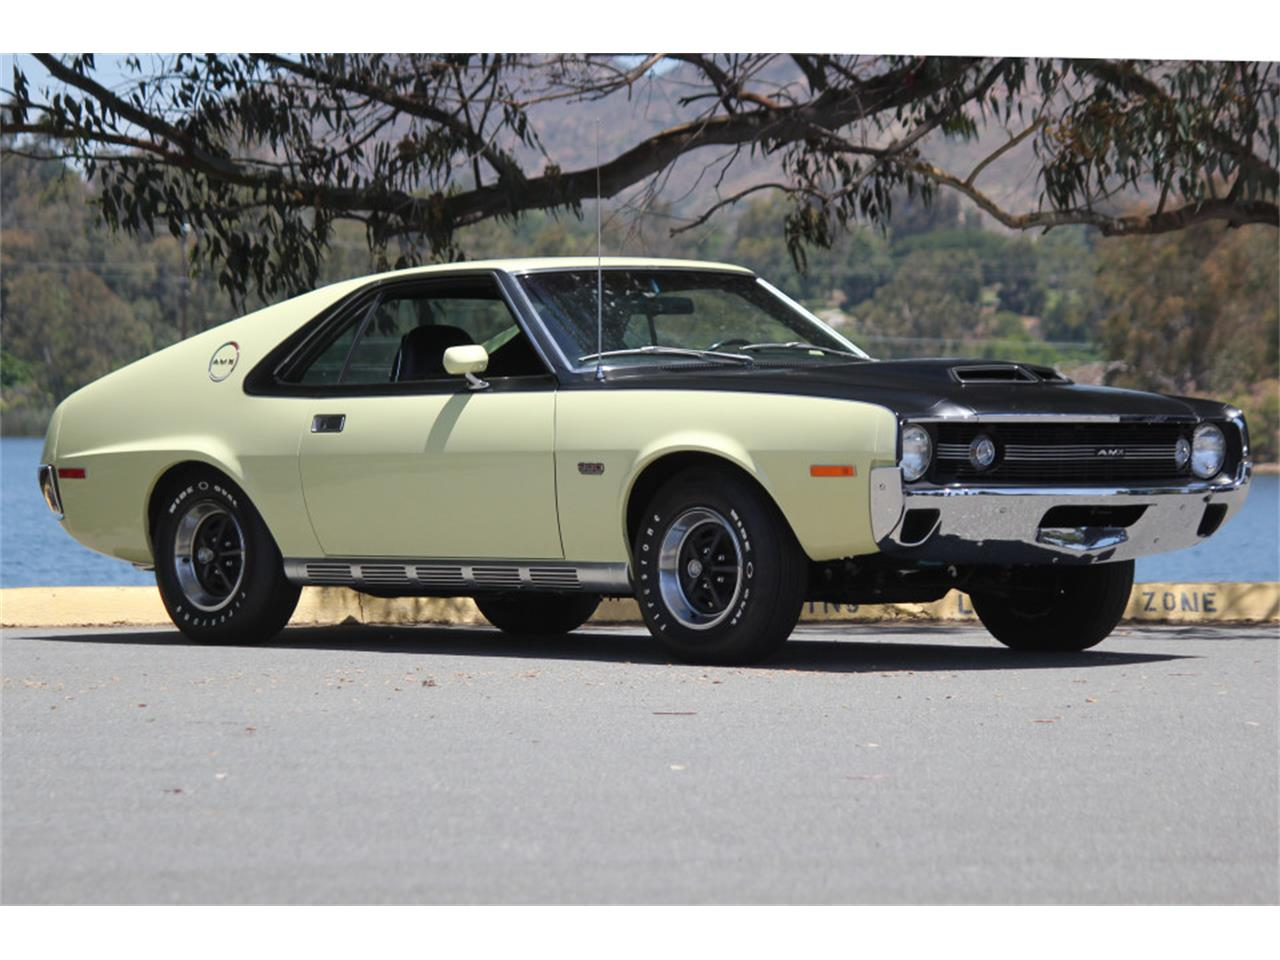 Large Picture of 1970 AMX located in California - $59,500.00 - QCFB